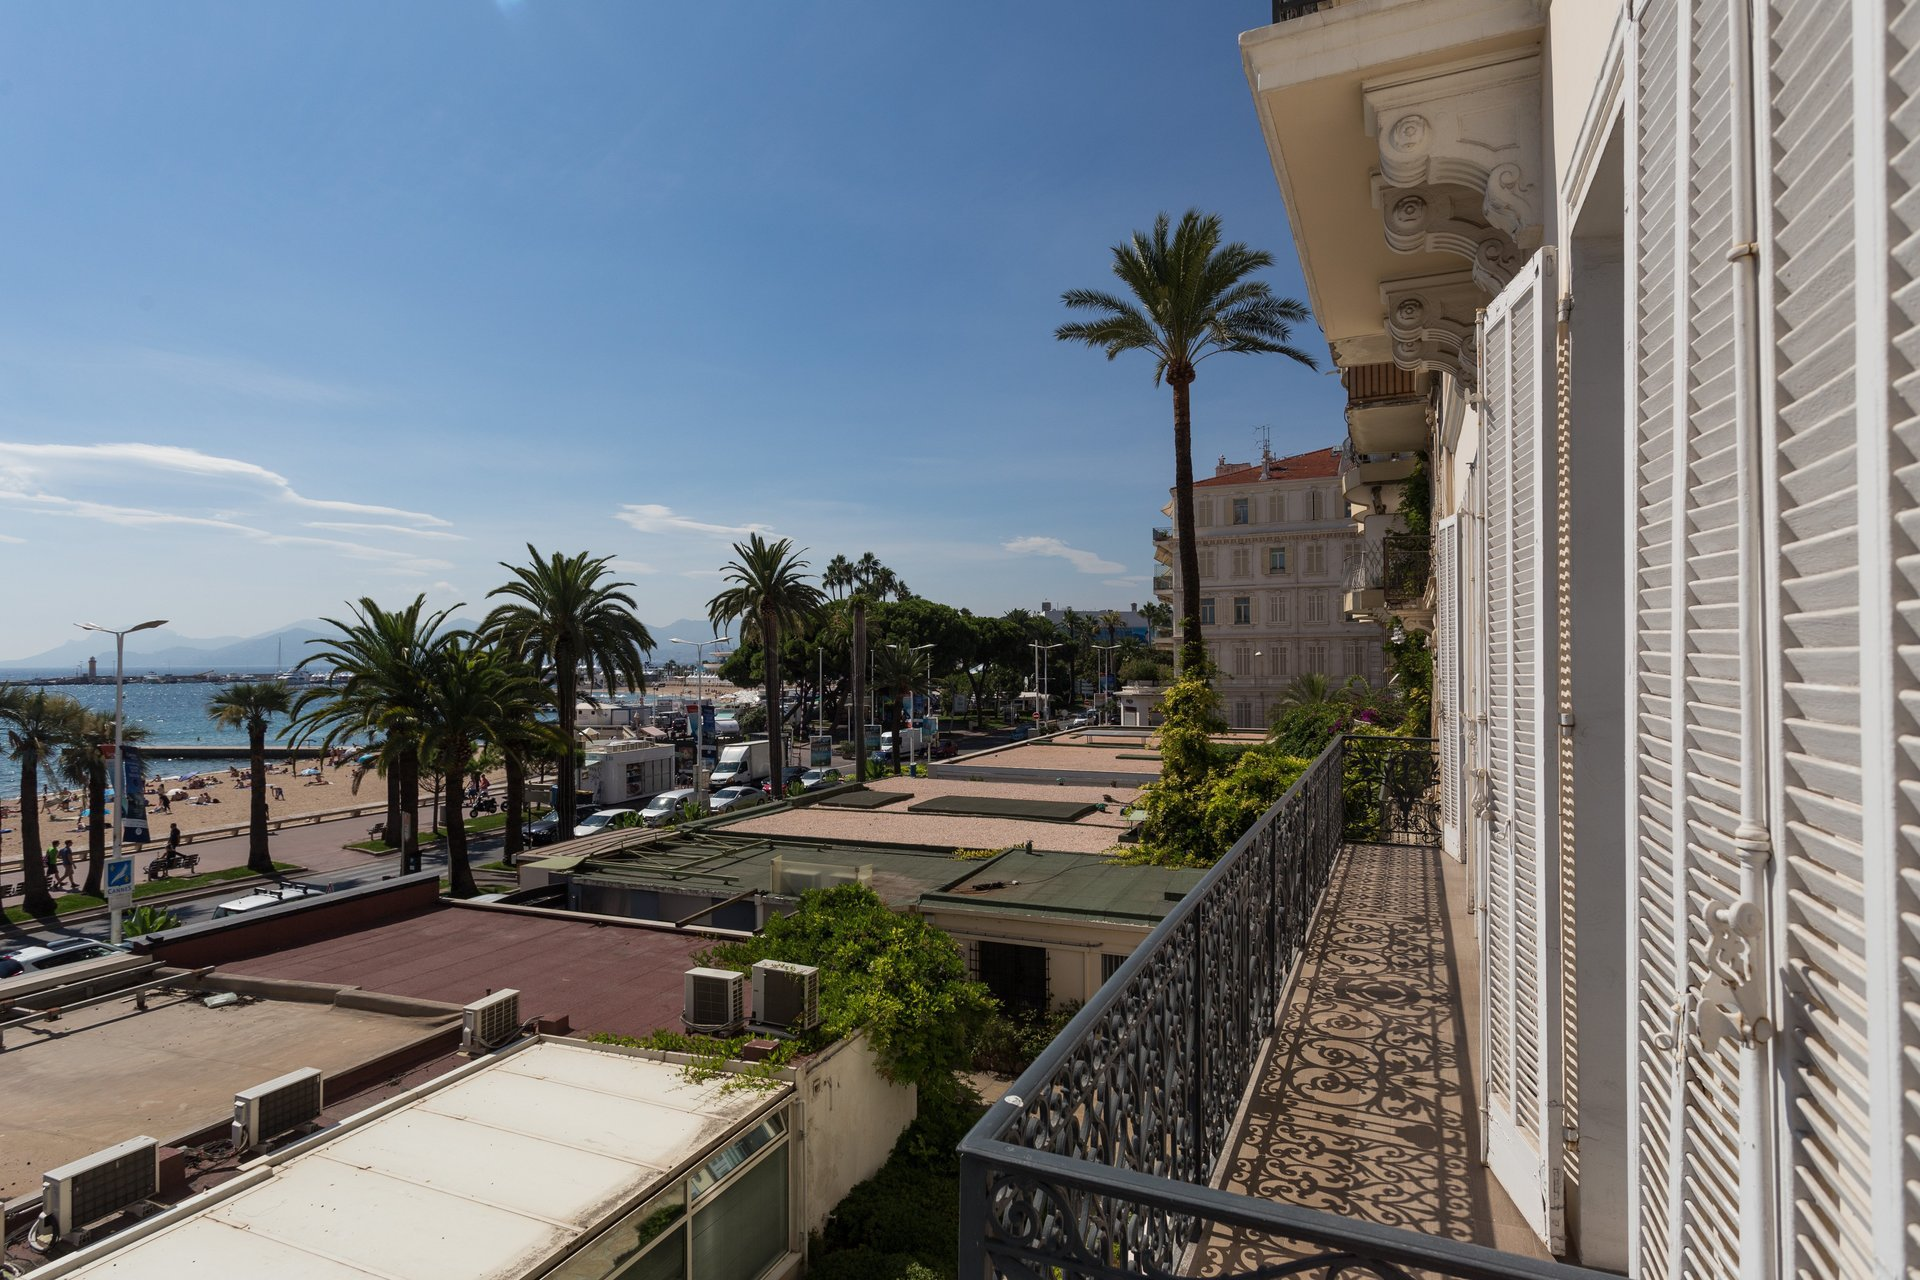 SUPERBE APARTMENT ON THE CROISETTE - CANNES